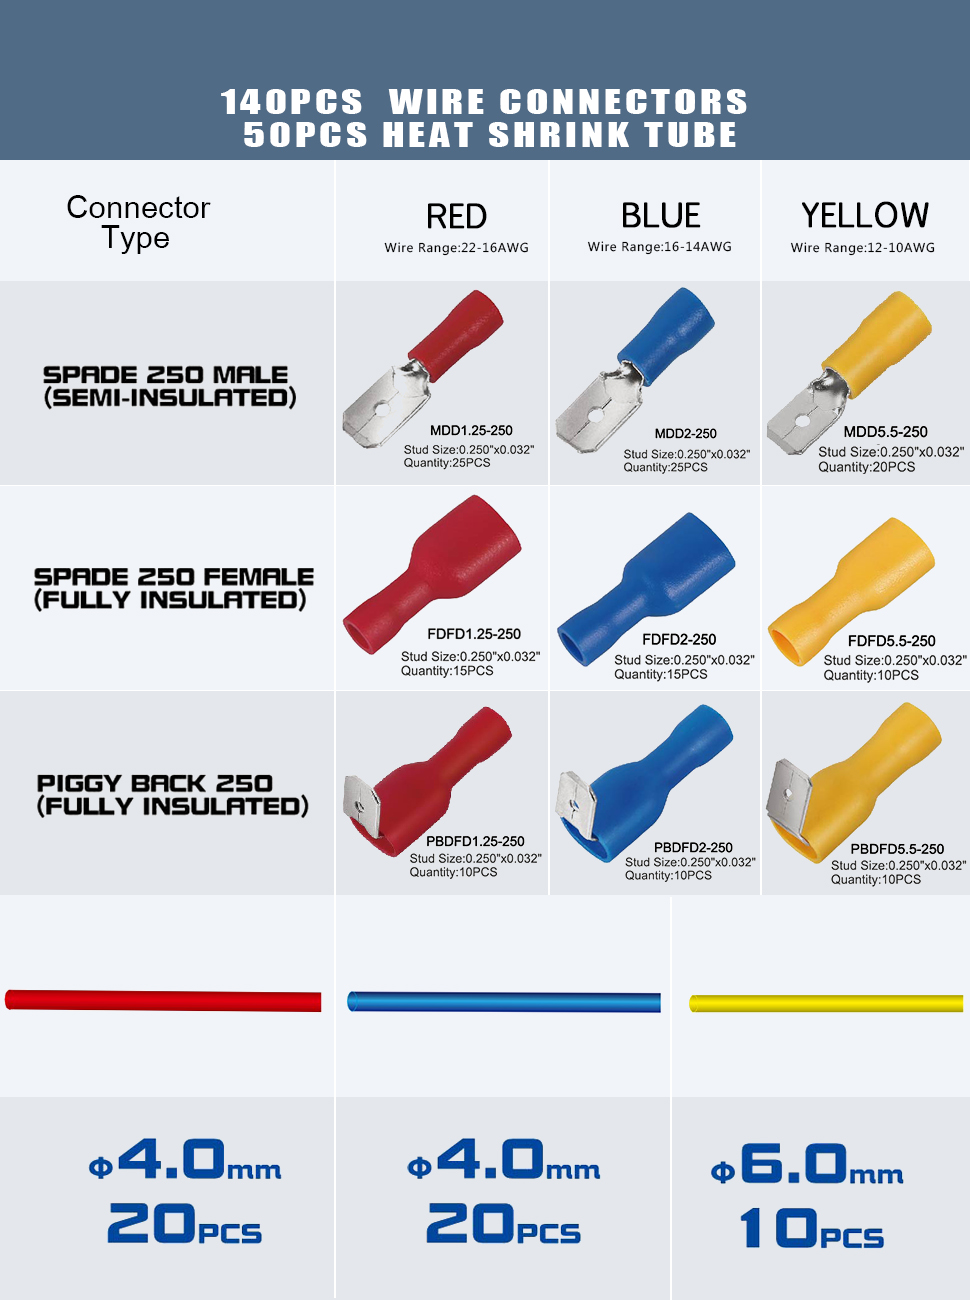 8 Sizes, 5 Color Waterproof Electrical Wire Cable Wrap Assortment Electric Insulation Heat Shrink Tube Kit MCIGICM 328 pcs Heat Shrink Tubing 2:1